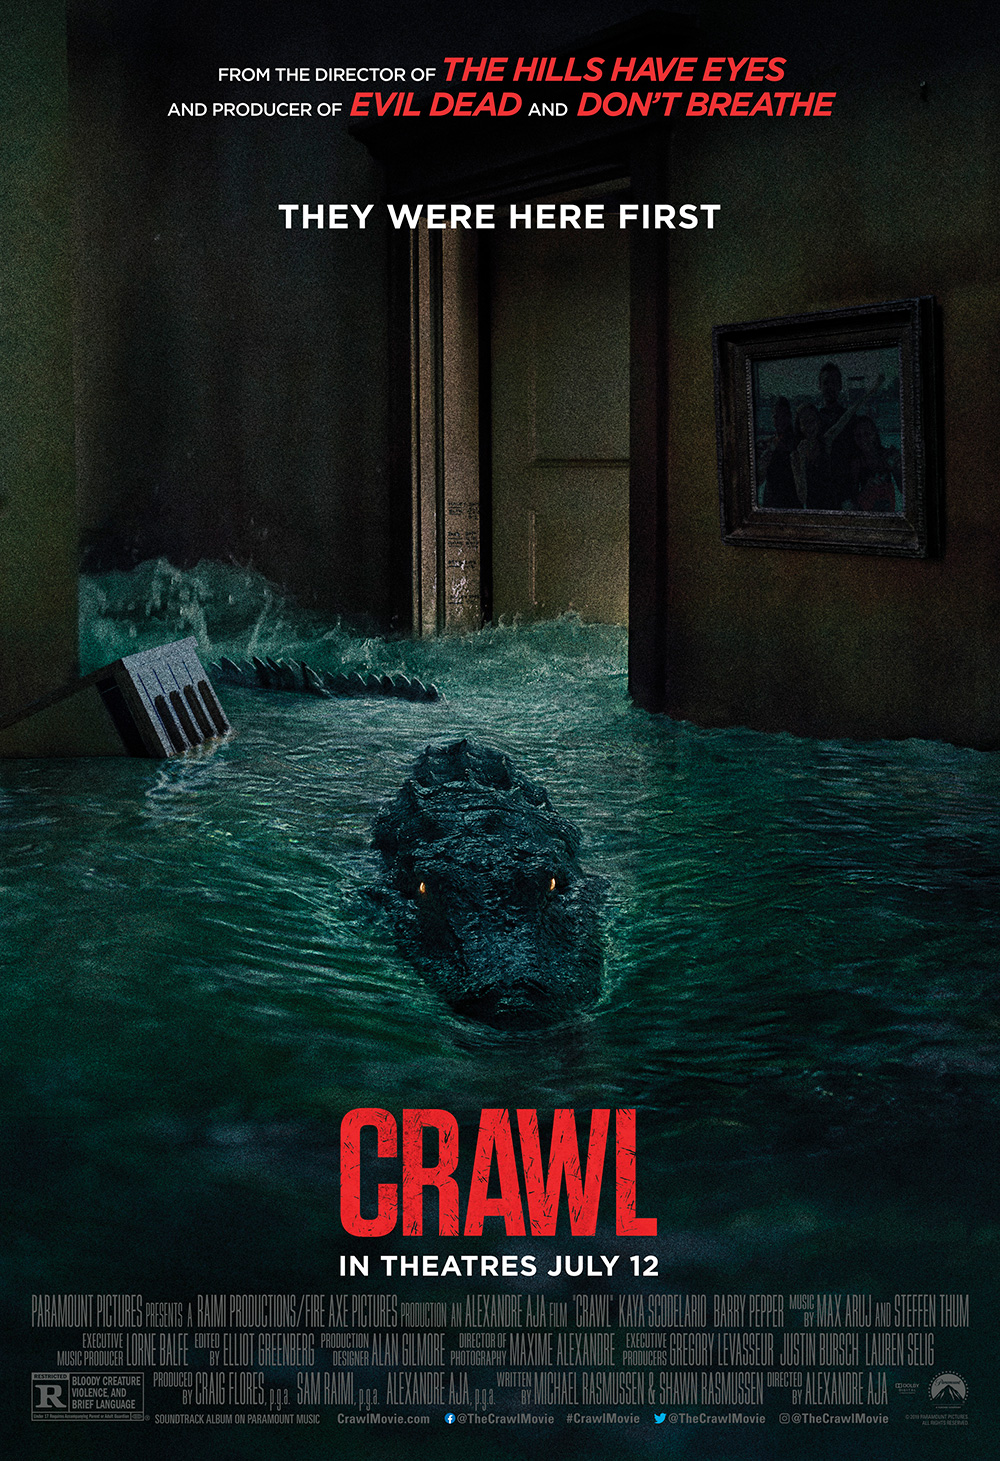 Crawl At An Amc Theatre Near You